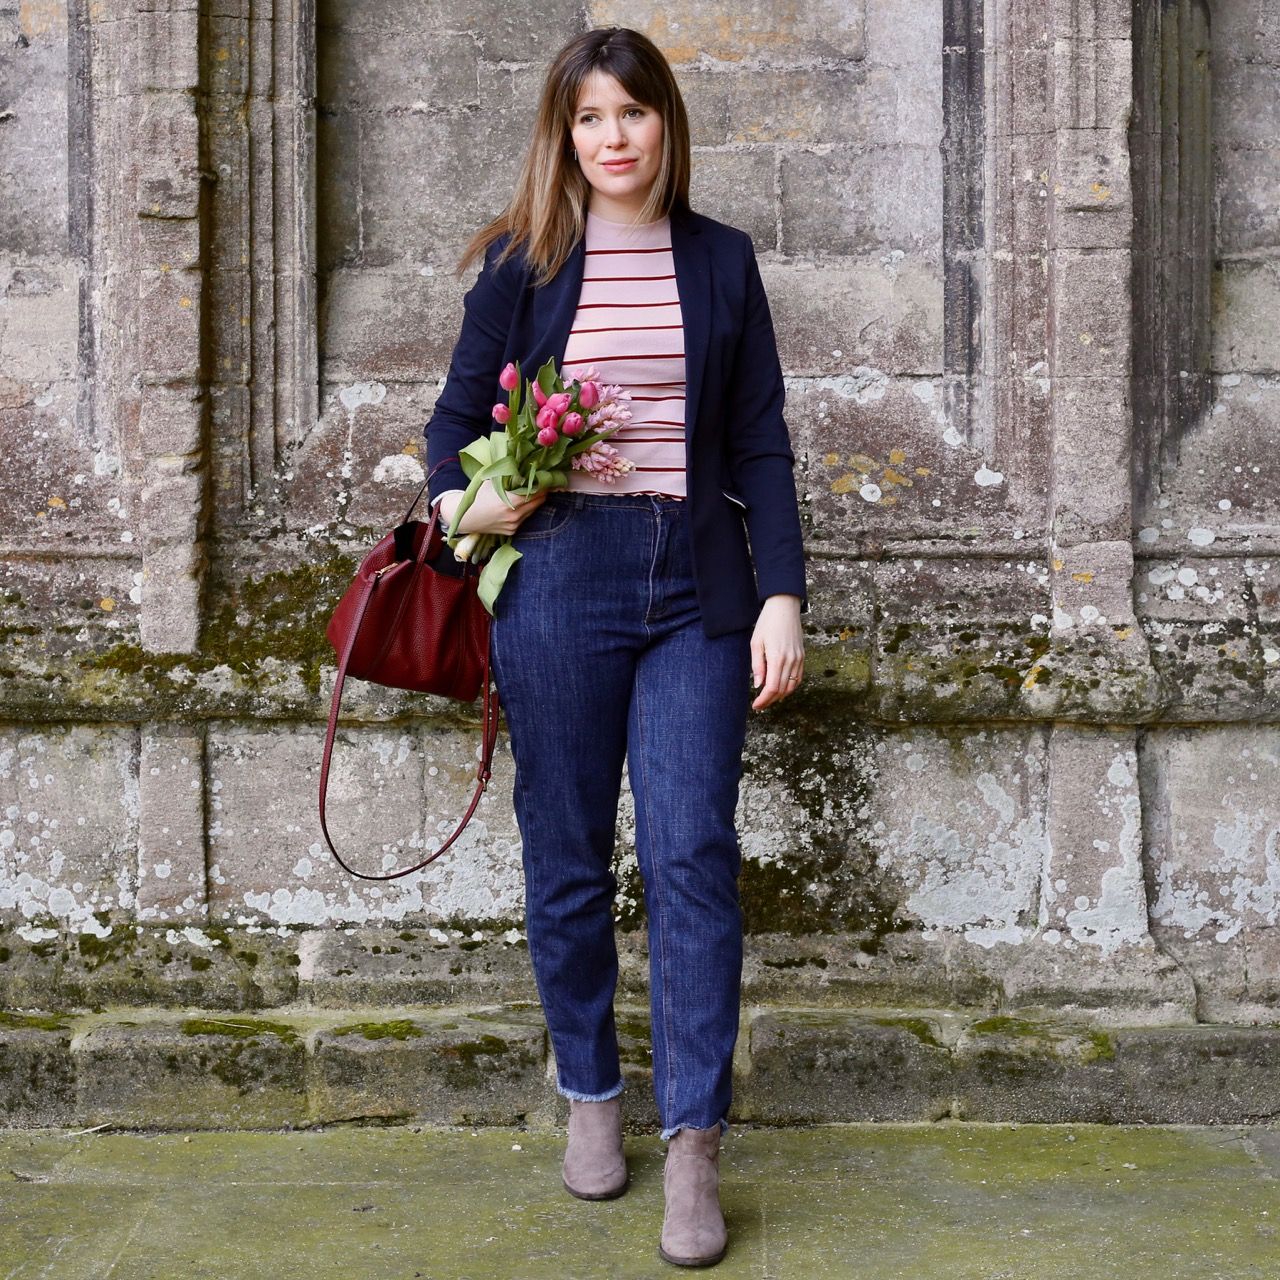 Can a mum wear mom jeans?